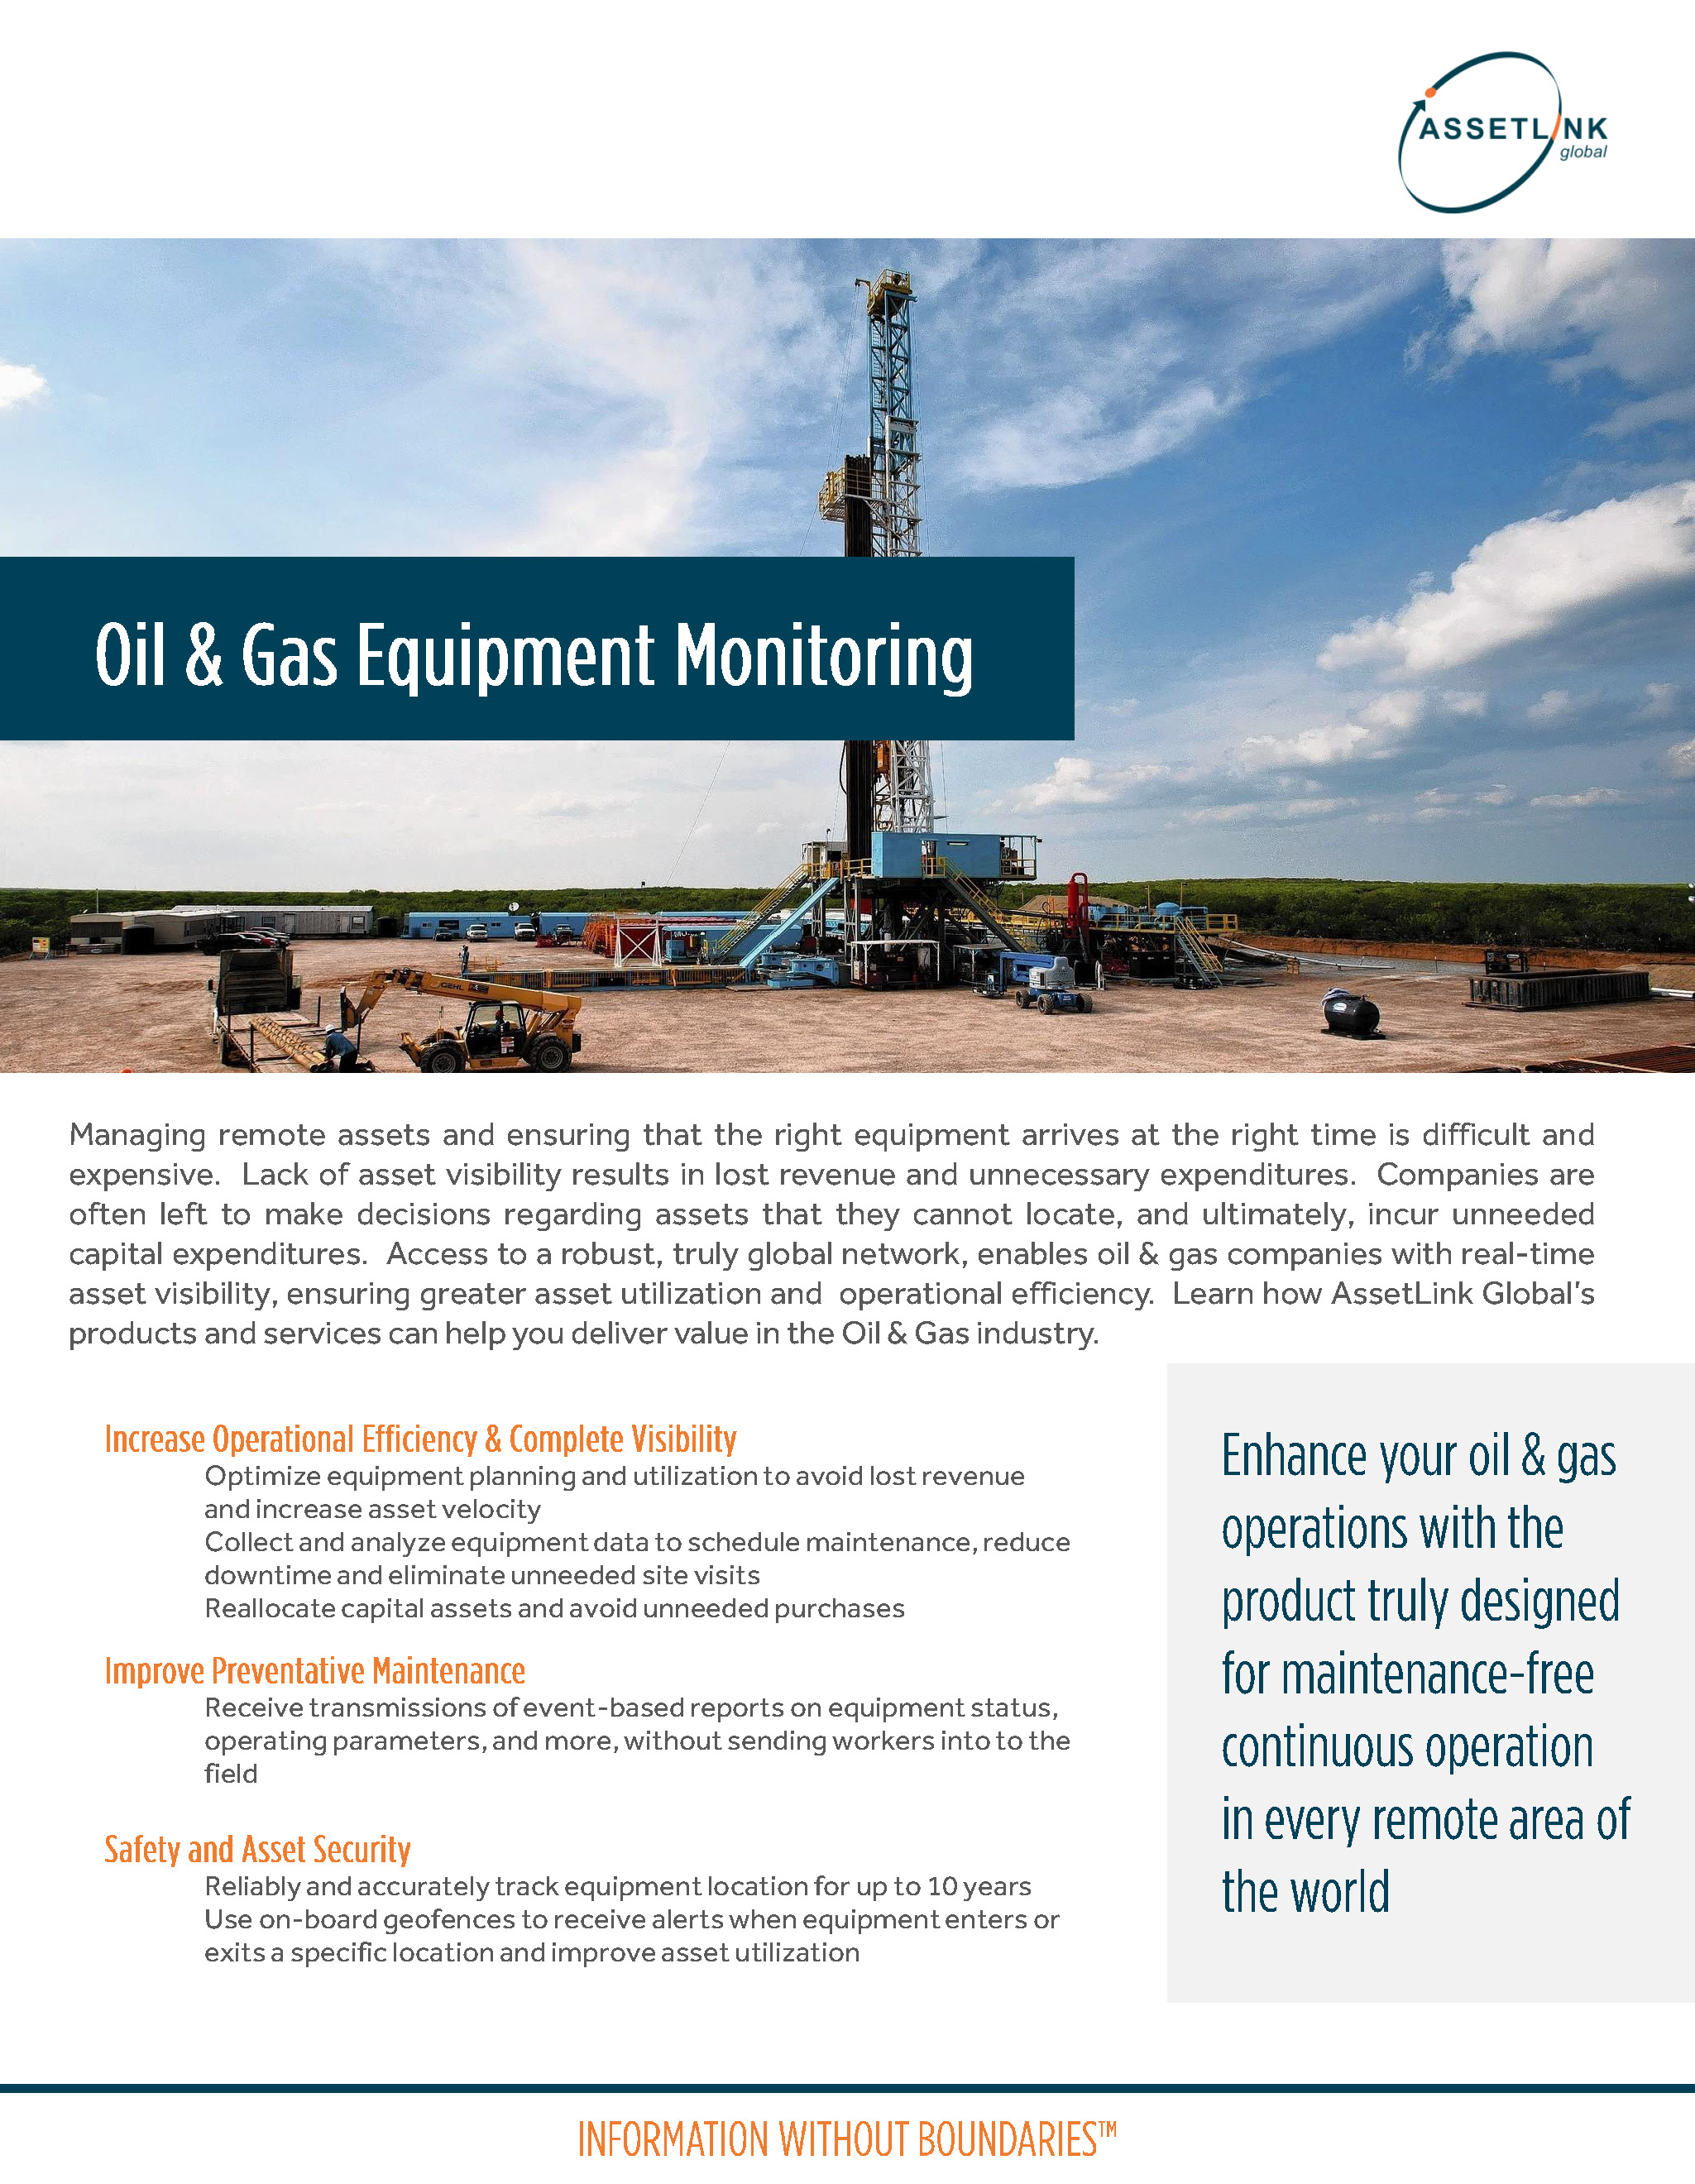 Oil & Gas Equipment Monitoring